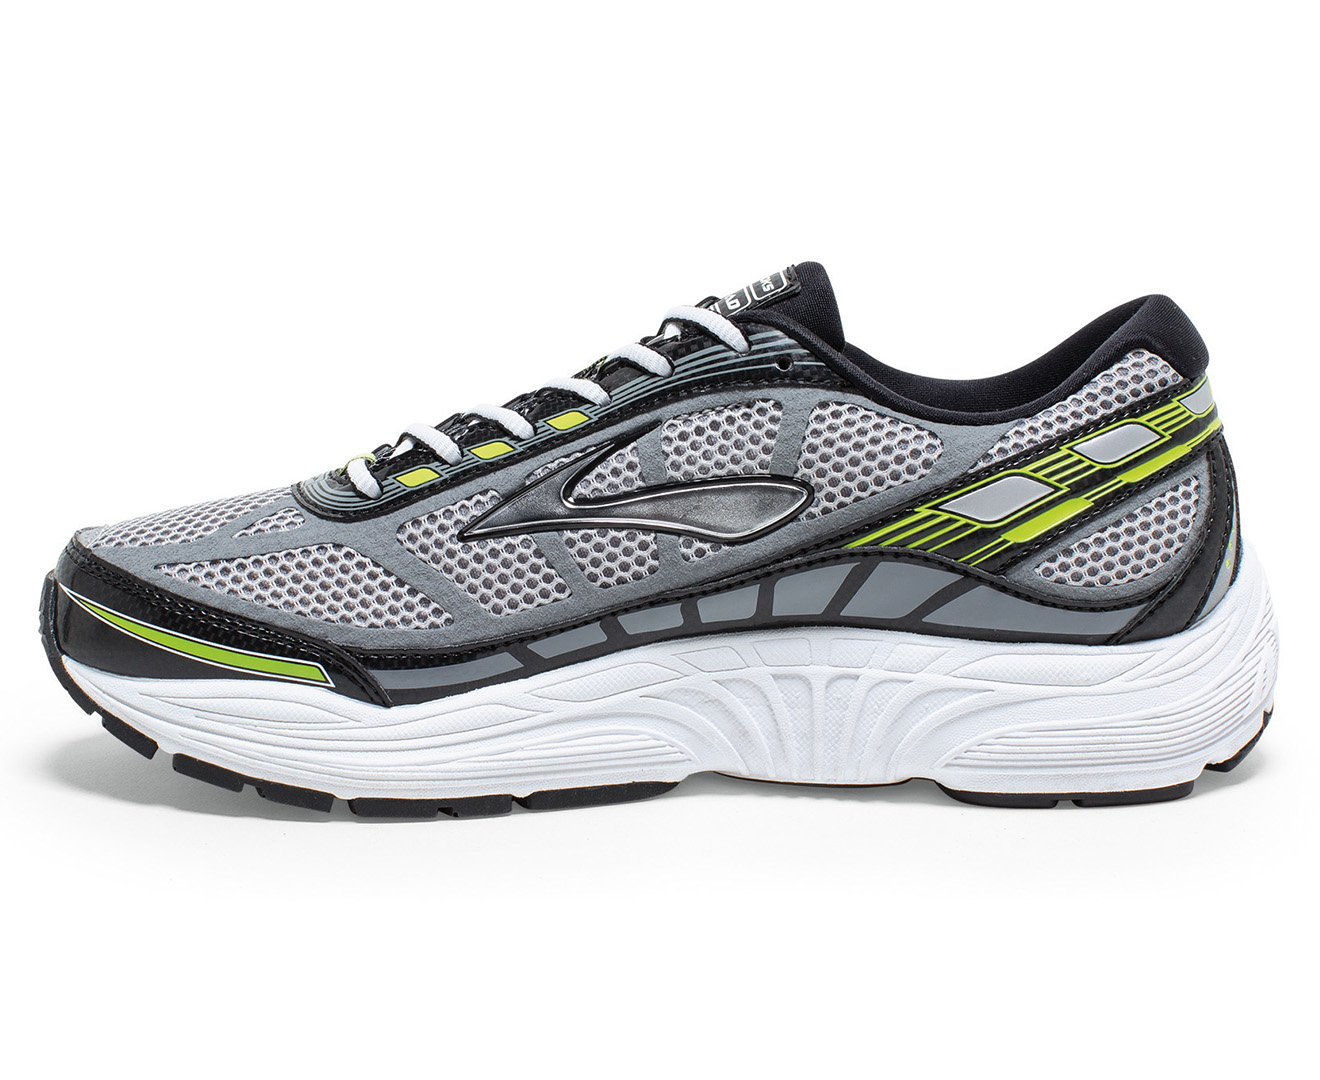 How To Find The Correct Running Shoe